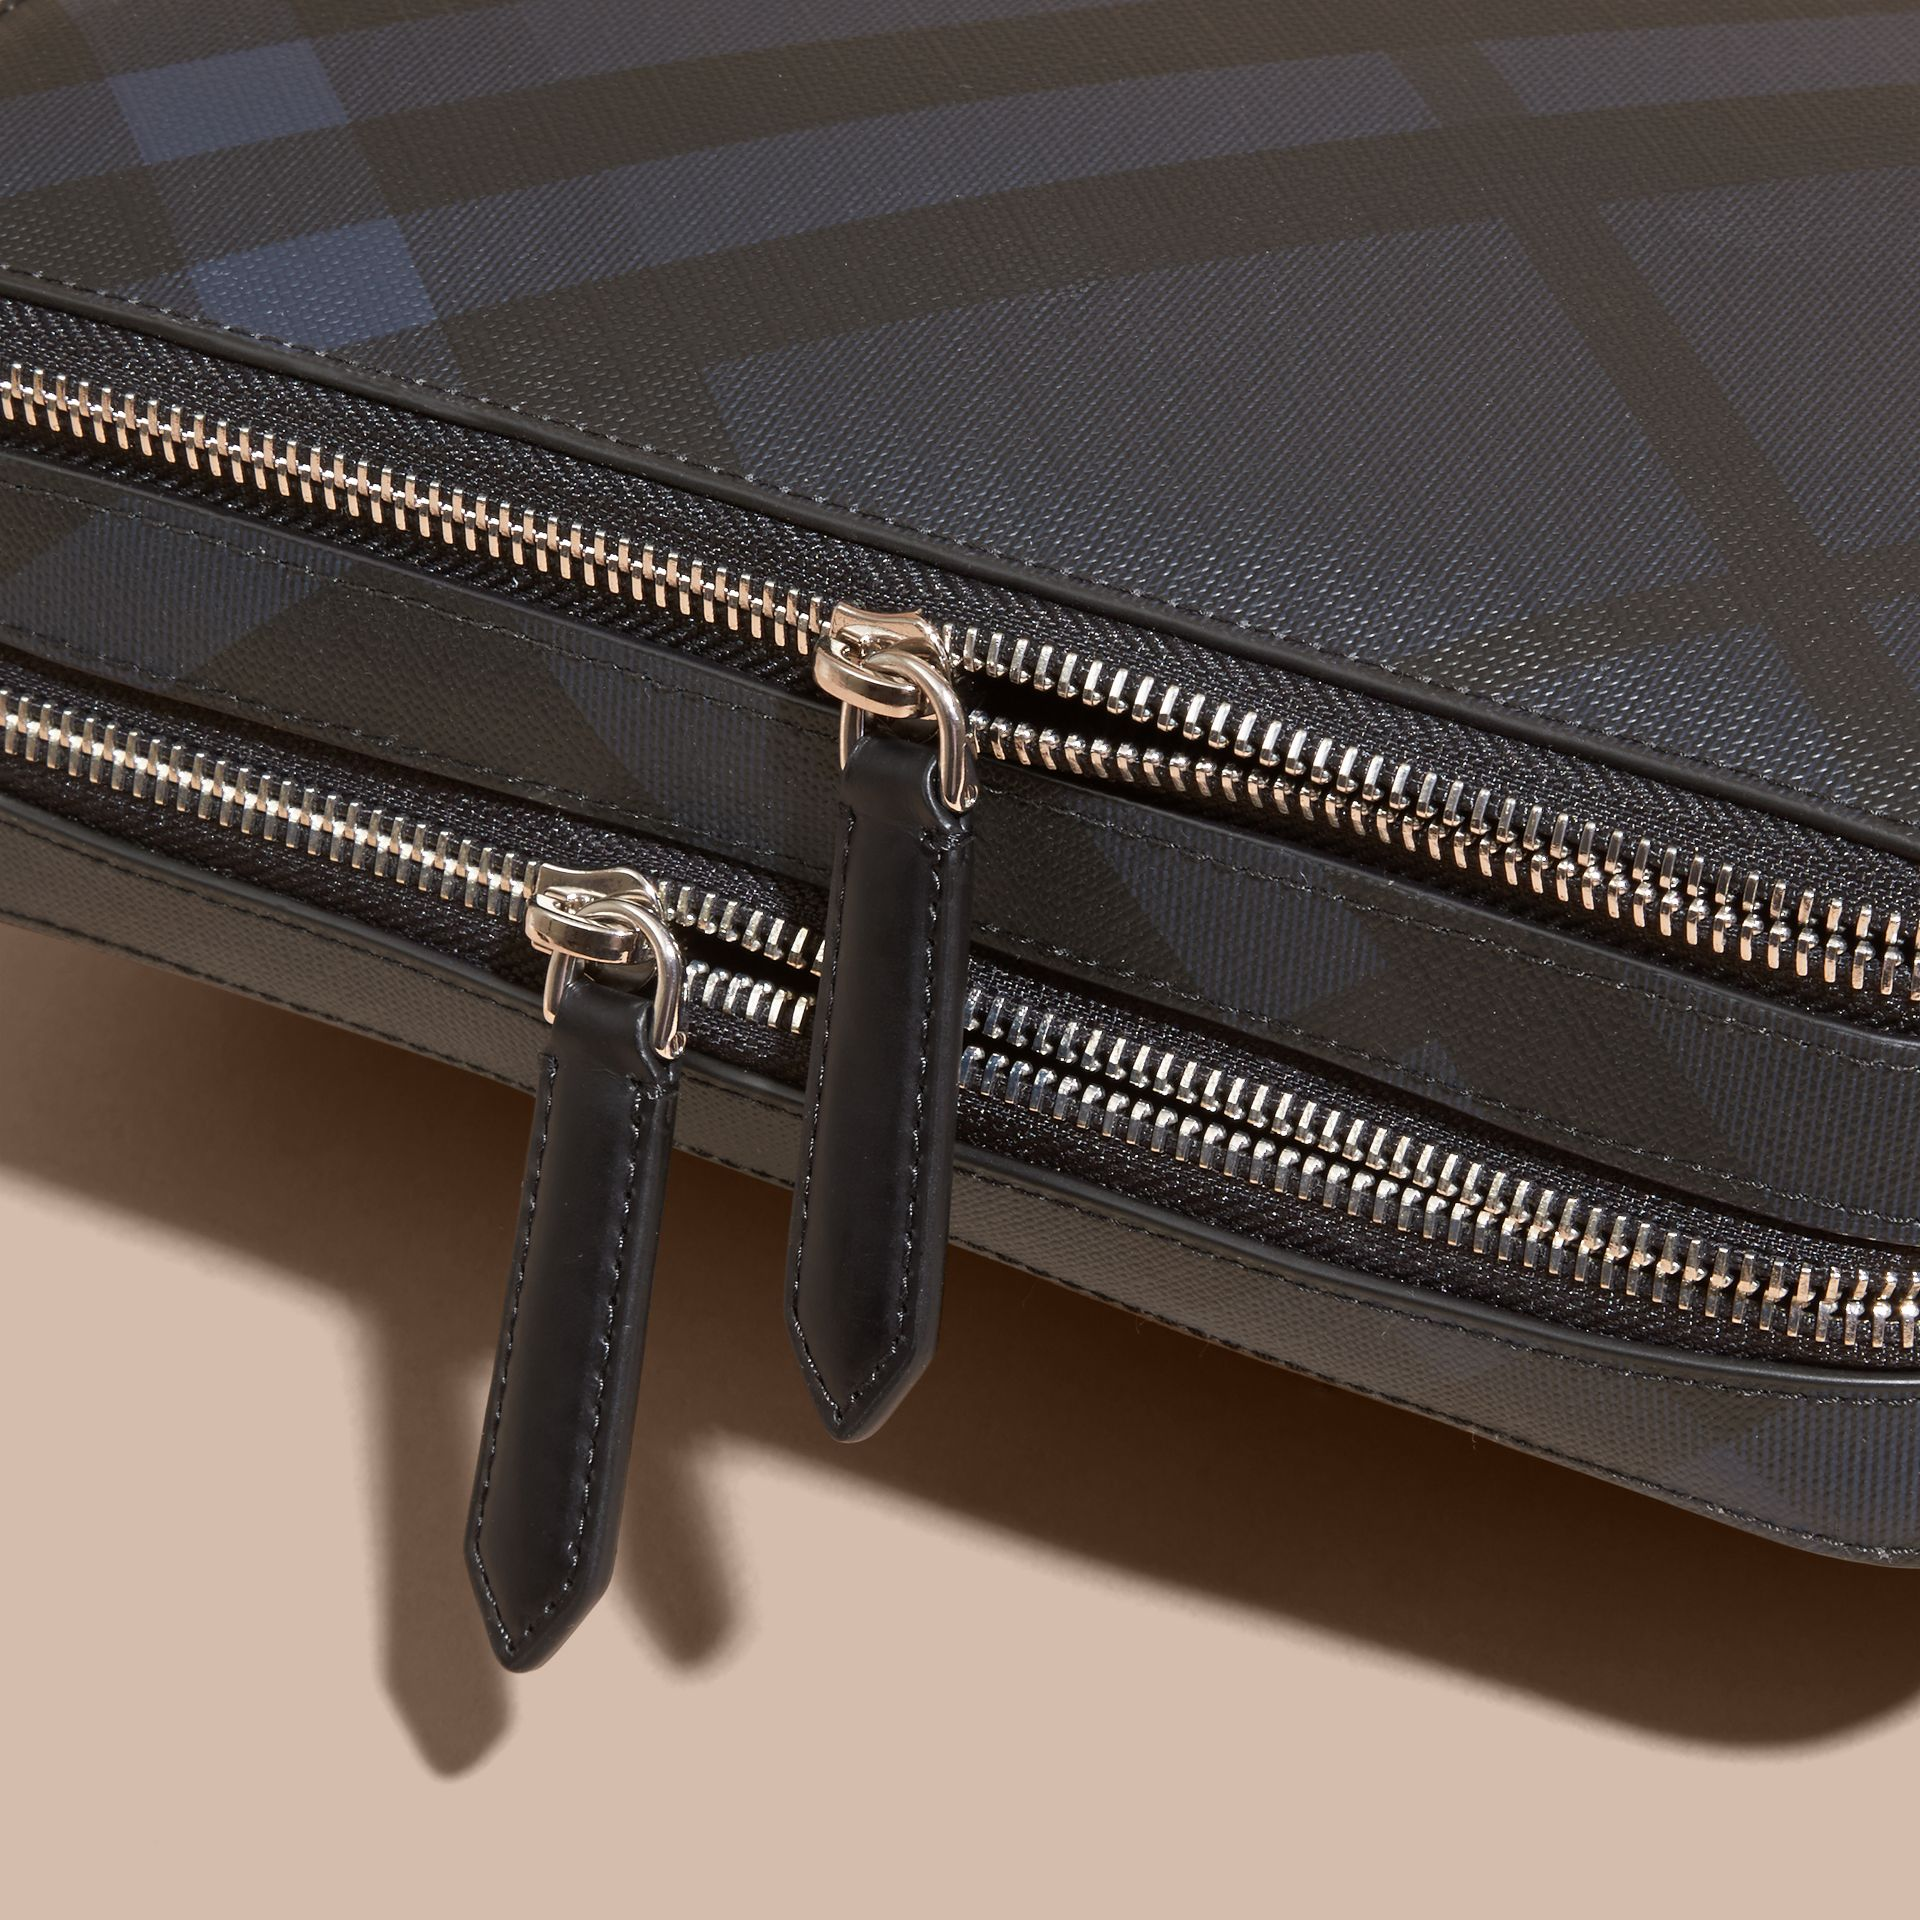 Leather-trimmed London Check Pouch in Navy/black - Men | Burberry Canada - gallery image 2